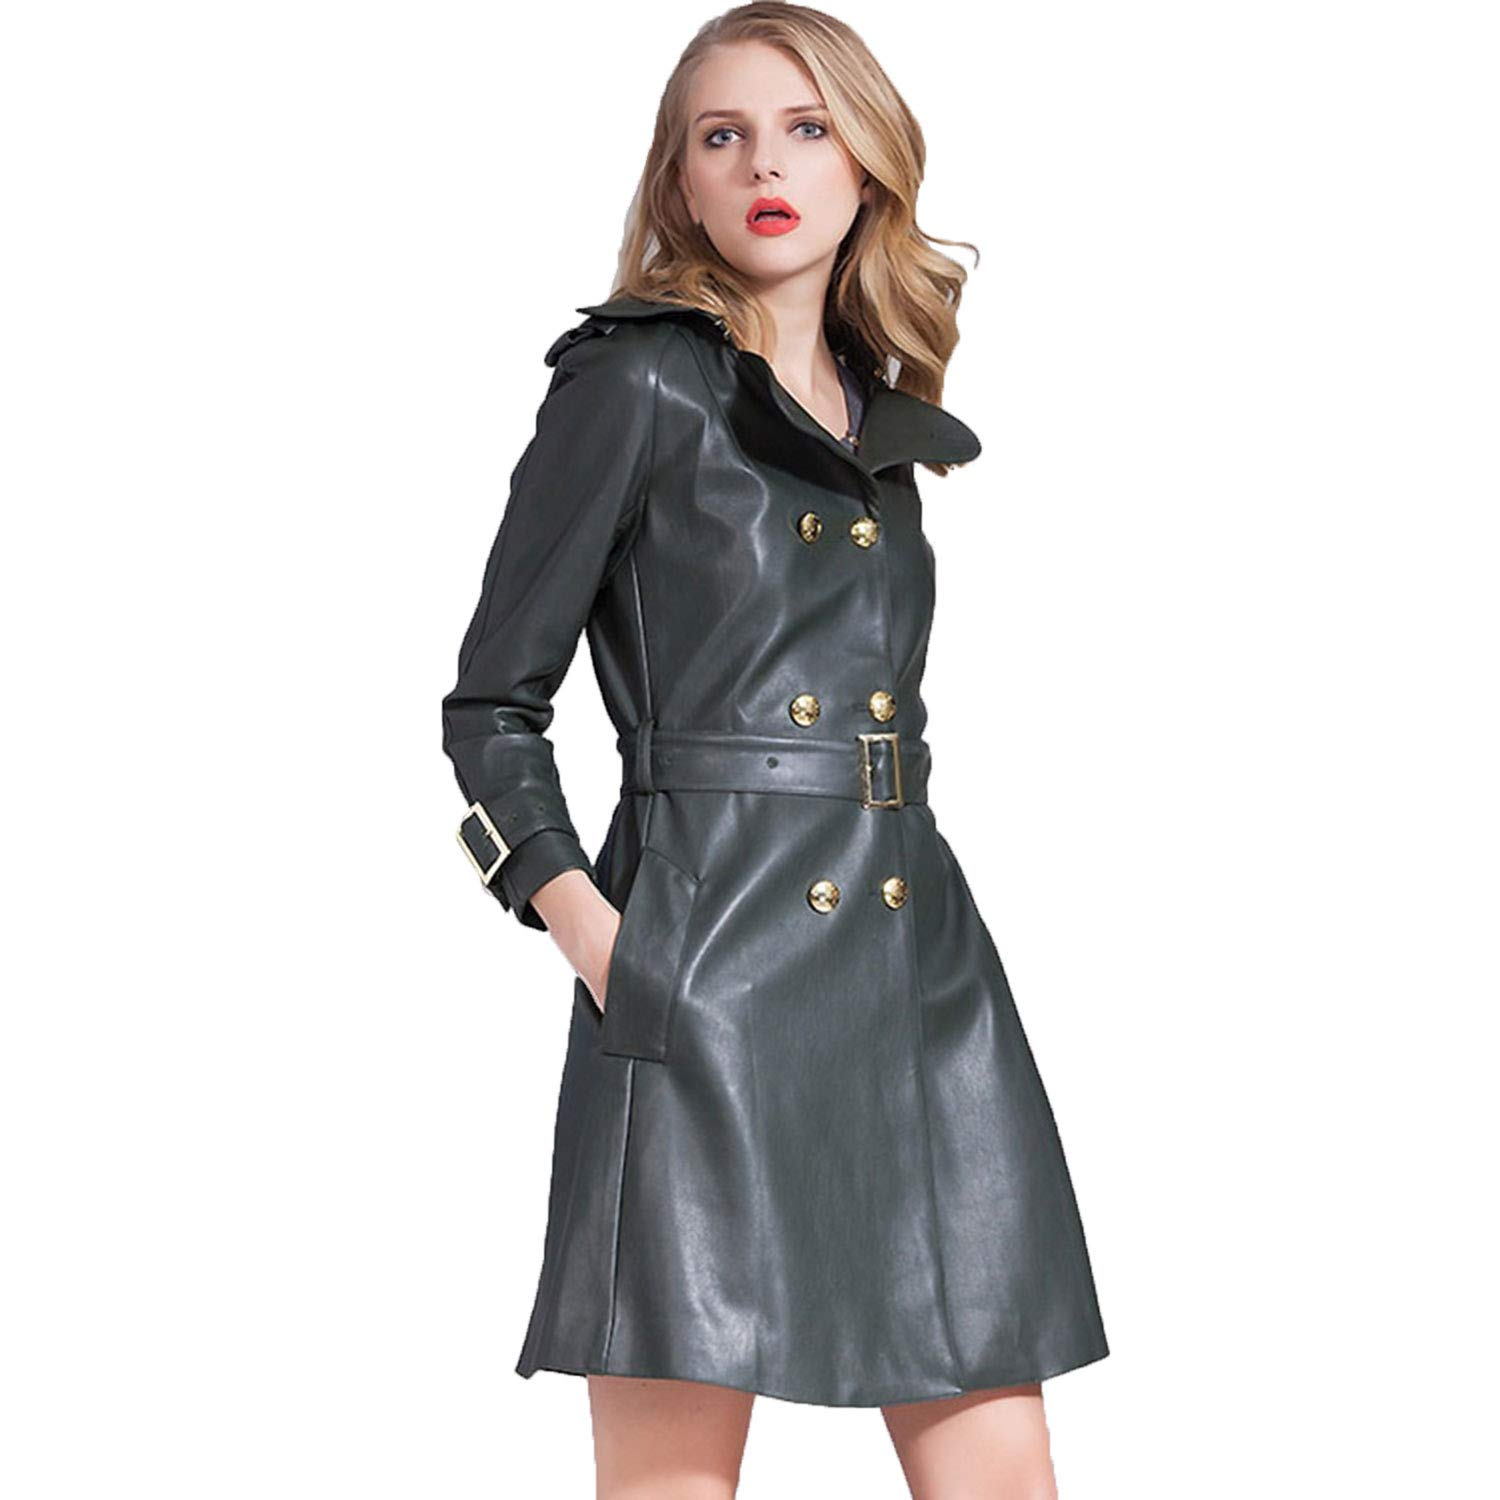 Women's Medium Long Section Leather Jacket,Autumn Winter British Style Lapel Coat with Belt Ideal for Ladies Girls Shopping Casual Daily Outwear